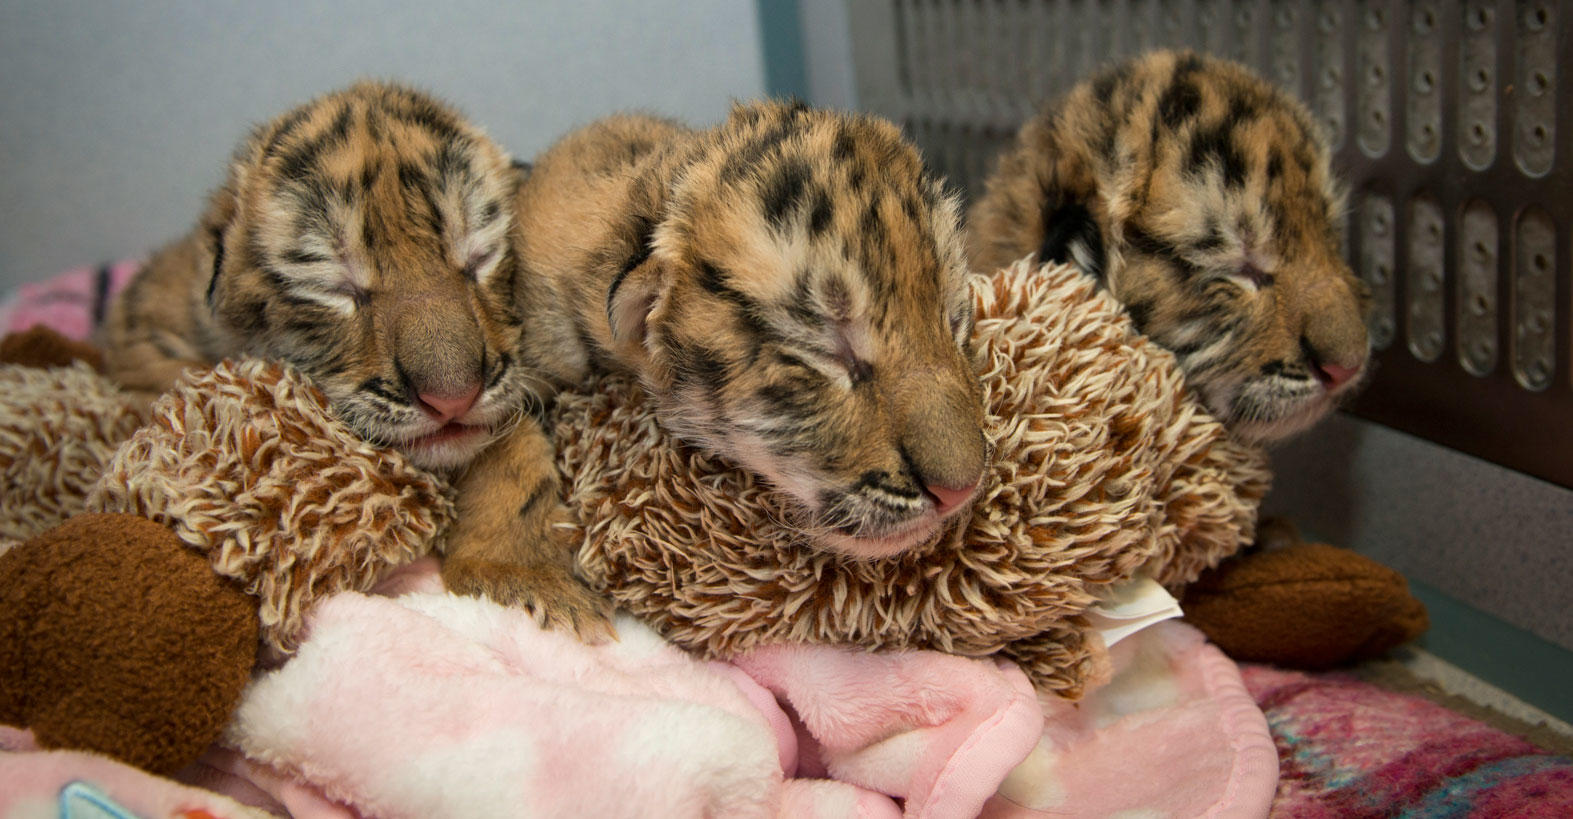 Baby tigers at the Columbus Zoo